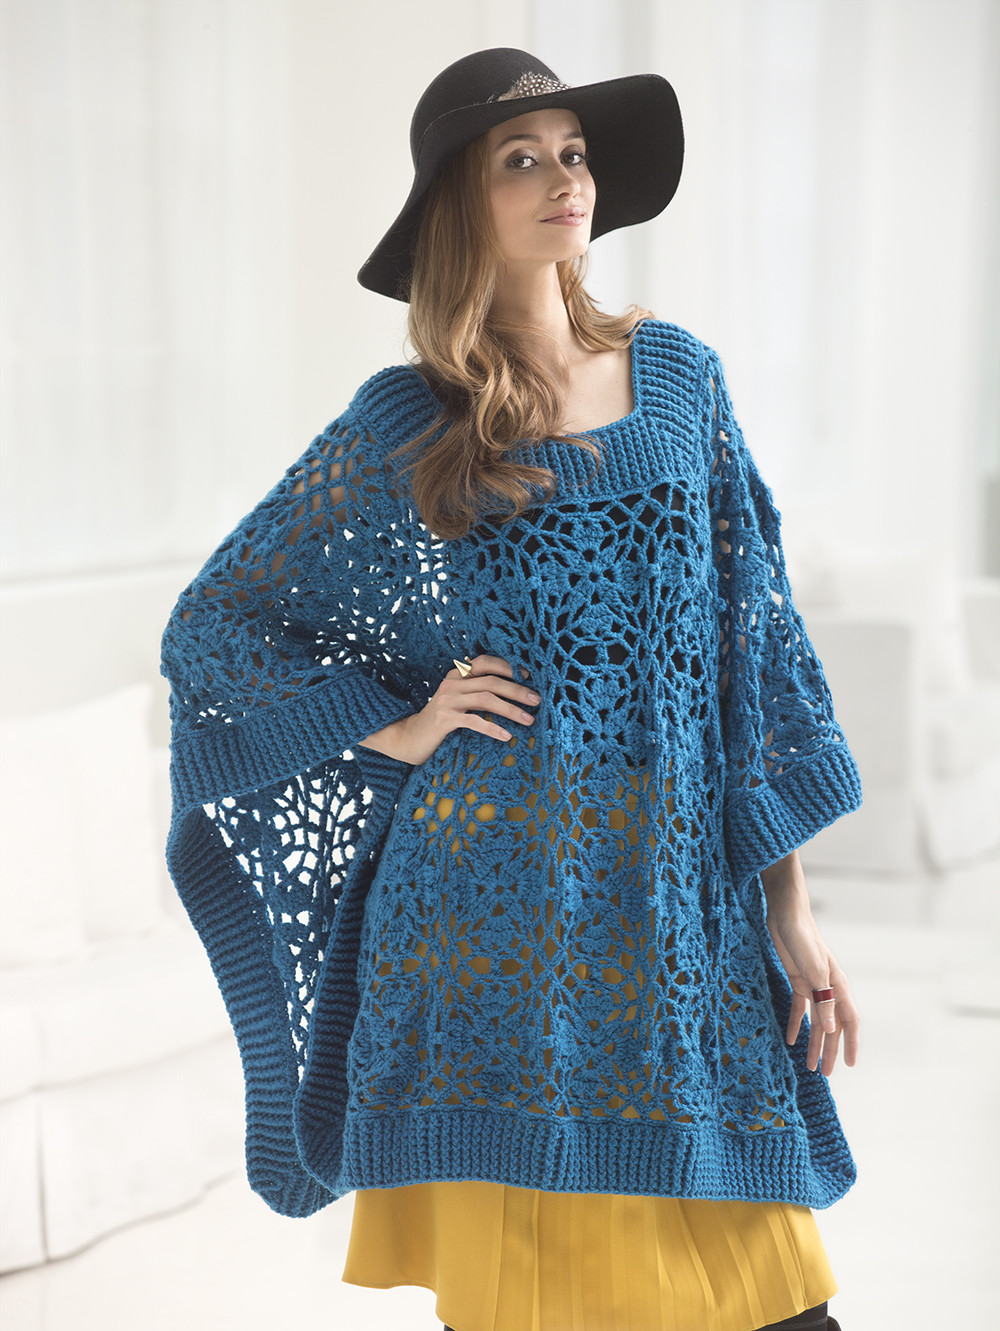 Crochet Poncho Pattern Luxury Our Favorite Crochet Sweater Kits for Mom and Baby Of Beautiful 41 Ideas Crochet Poncho Pattern